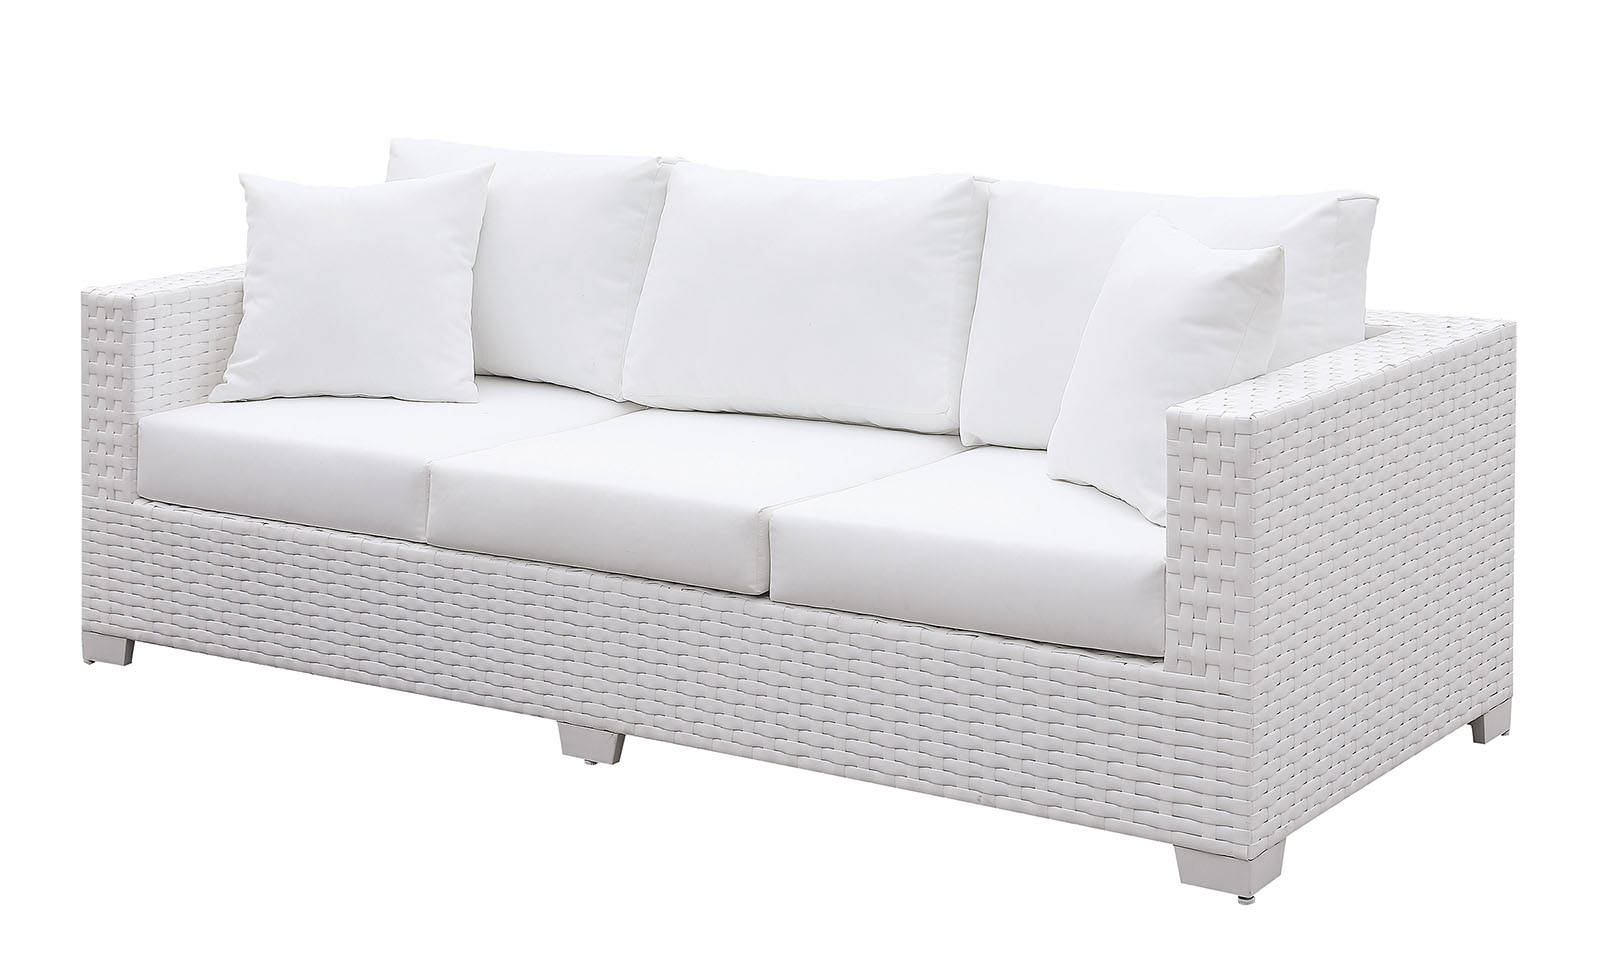 Groovy Furniture Of America Somani White Sofa With 2 Pillows Squirreltailoven Fun Painted Chair Ideas Images Squirreltailovenorg